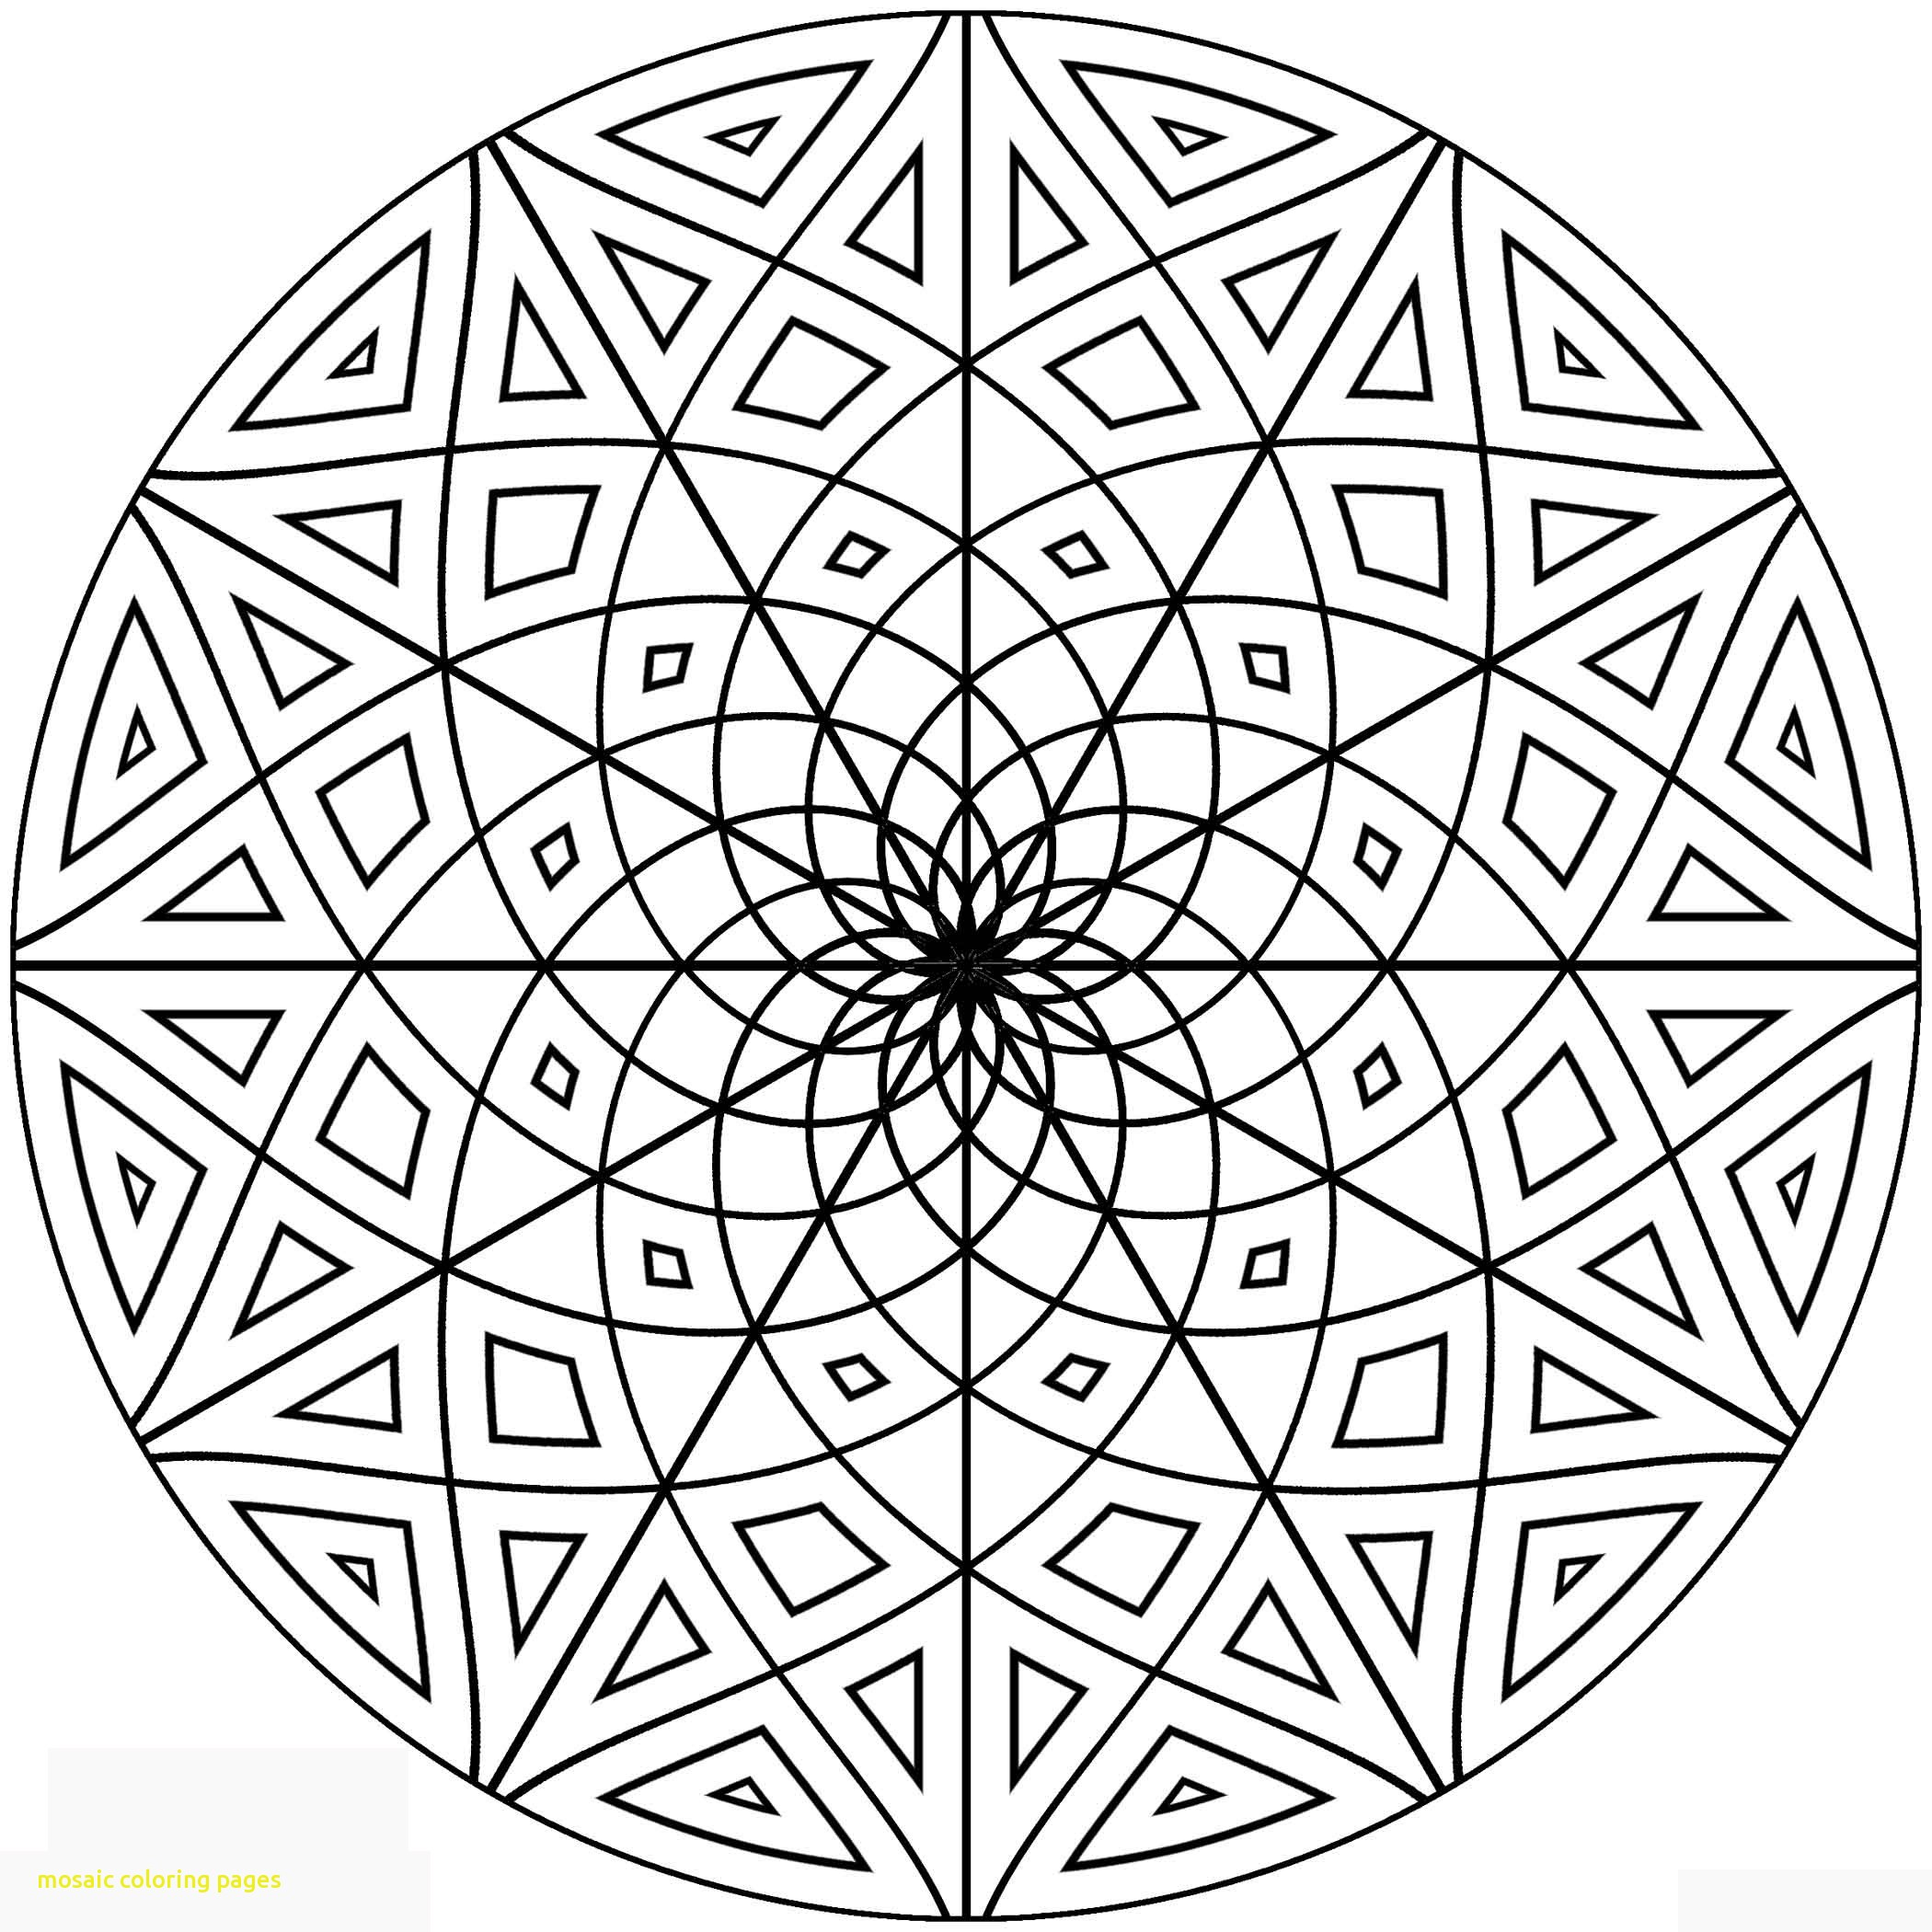 2100x2100 Islamic Ornament Mosaic Coloring Page Free Printable Pages